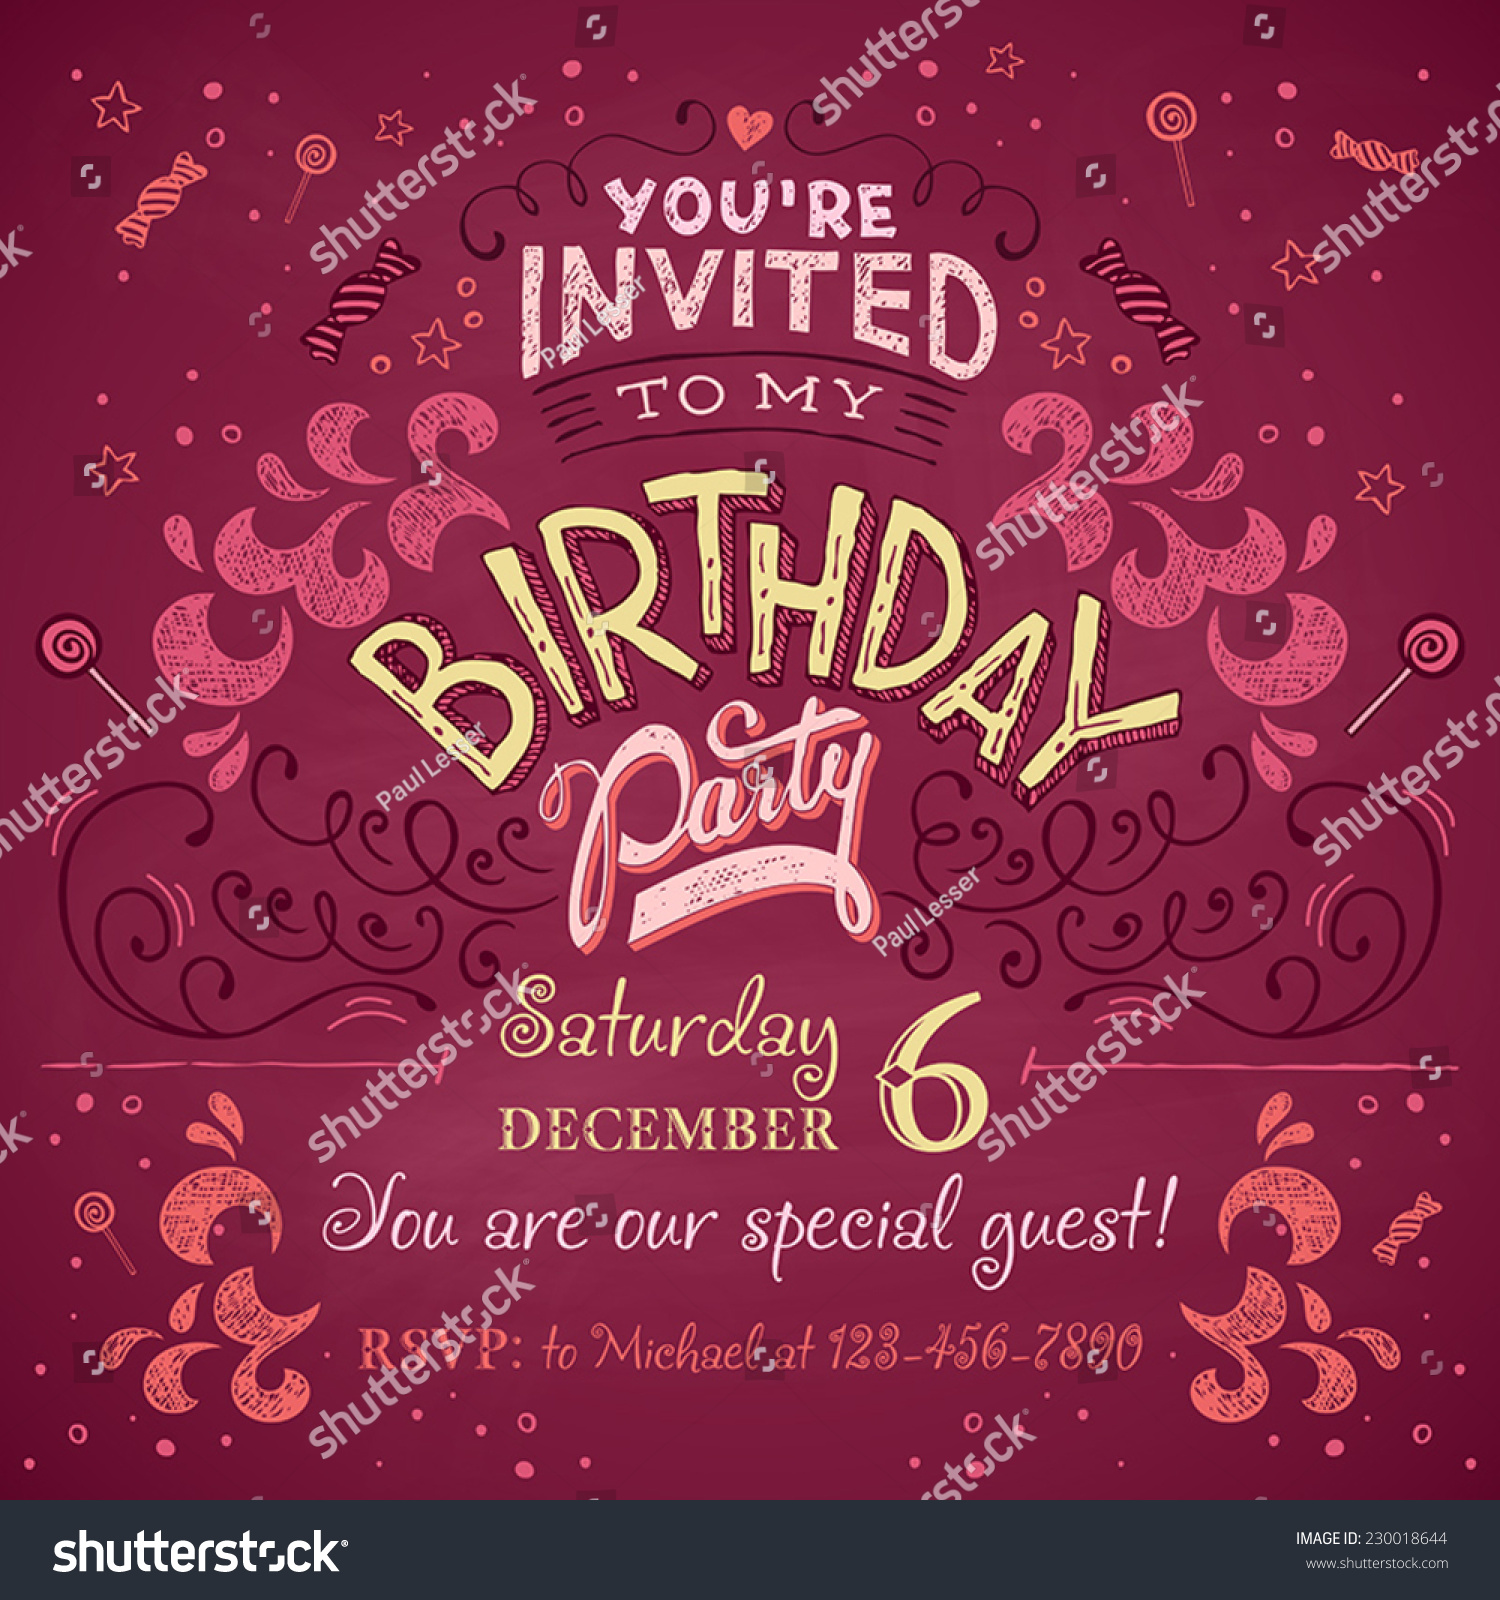 Vintage Birthday Party Invitation Card Design Stock Photo (Photo ...